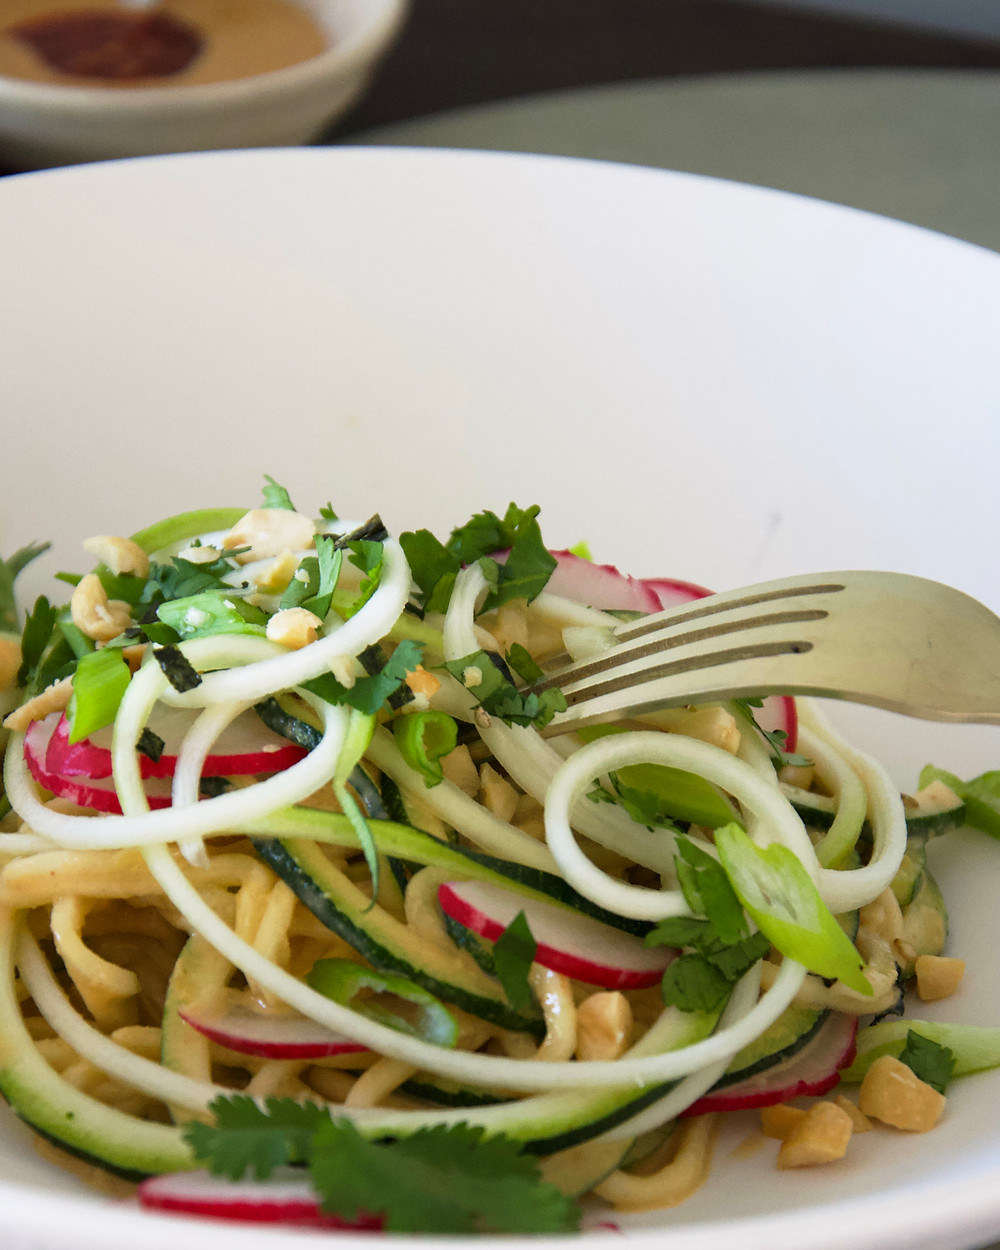 Zucchini Noodle Salad with Peanut Sauce Dressing